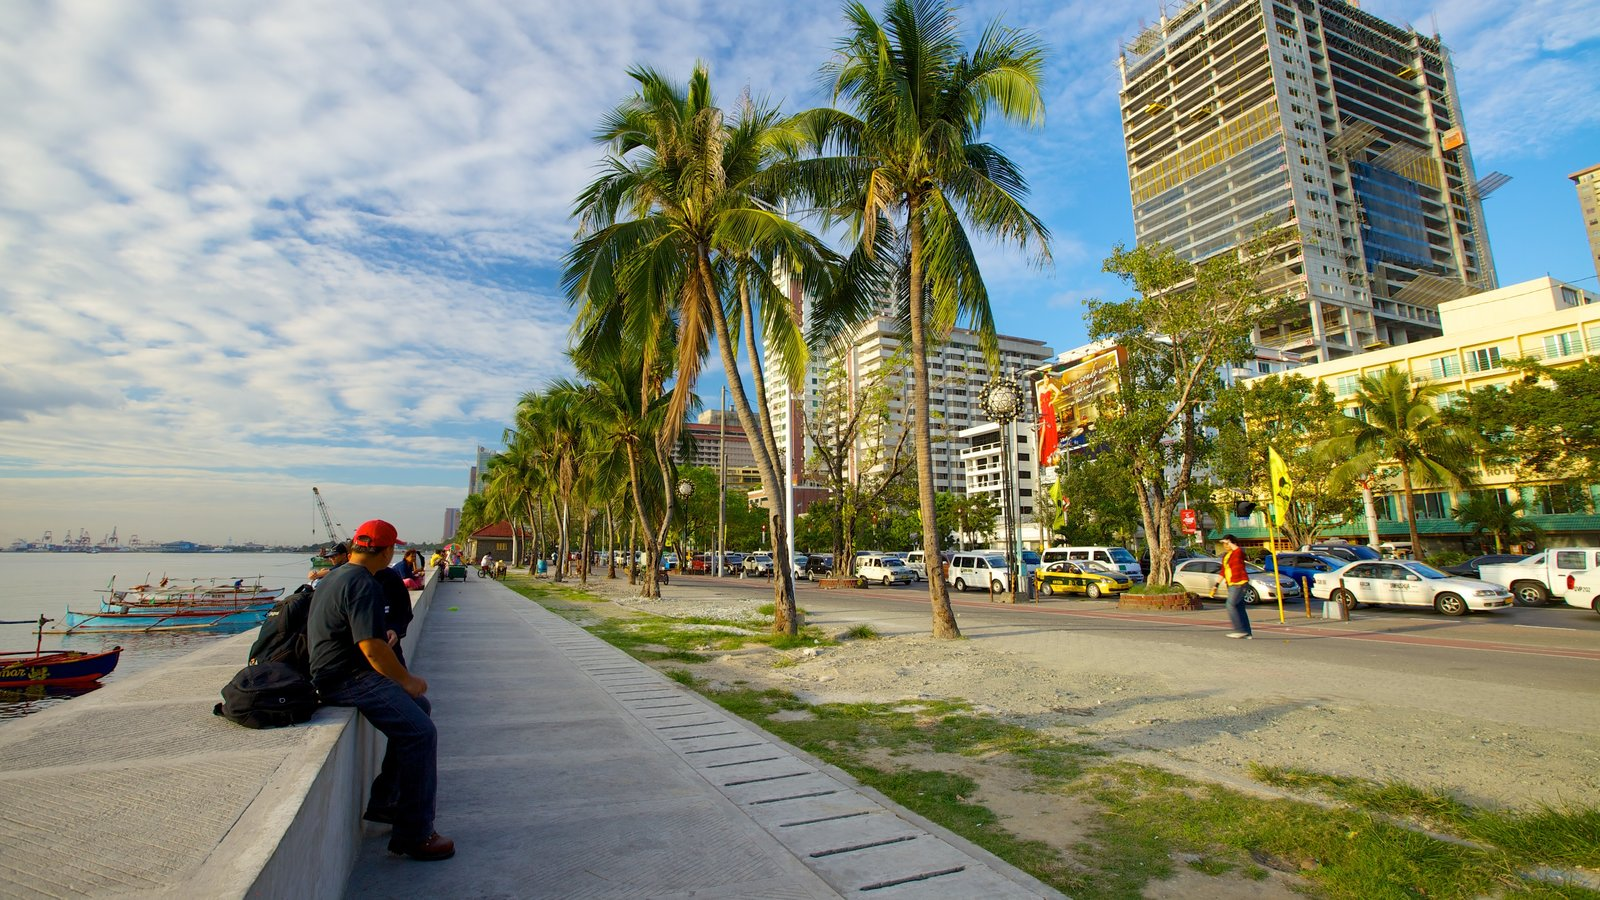 Manila showing a coastal town, tropical scenes and street scenes